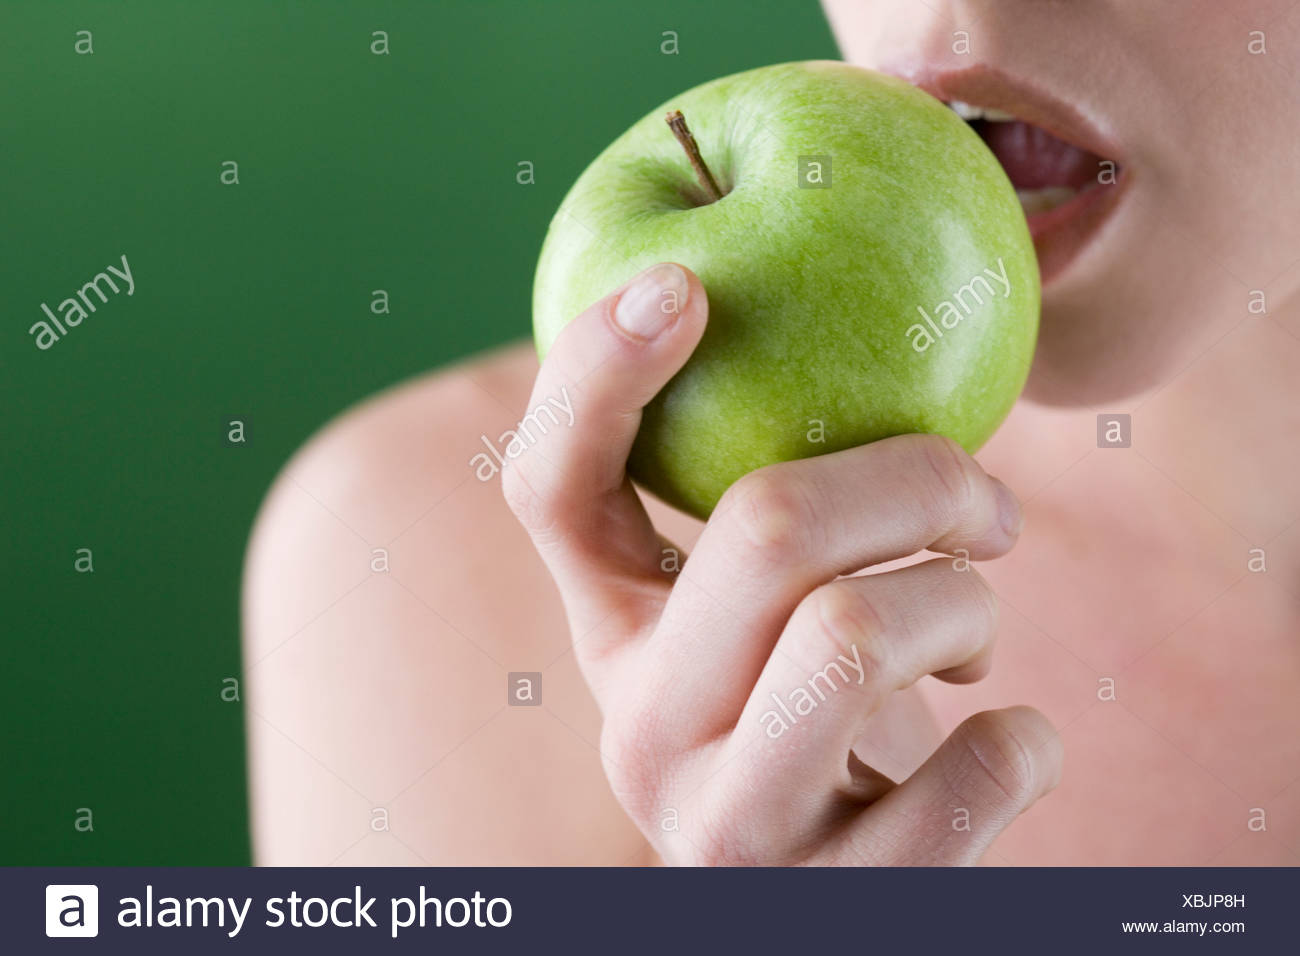 A young woman eating an apple, close-up - Stock Image